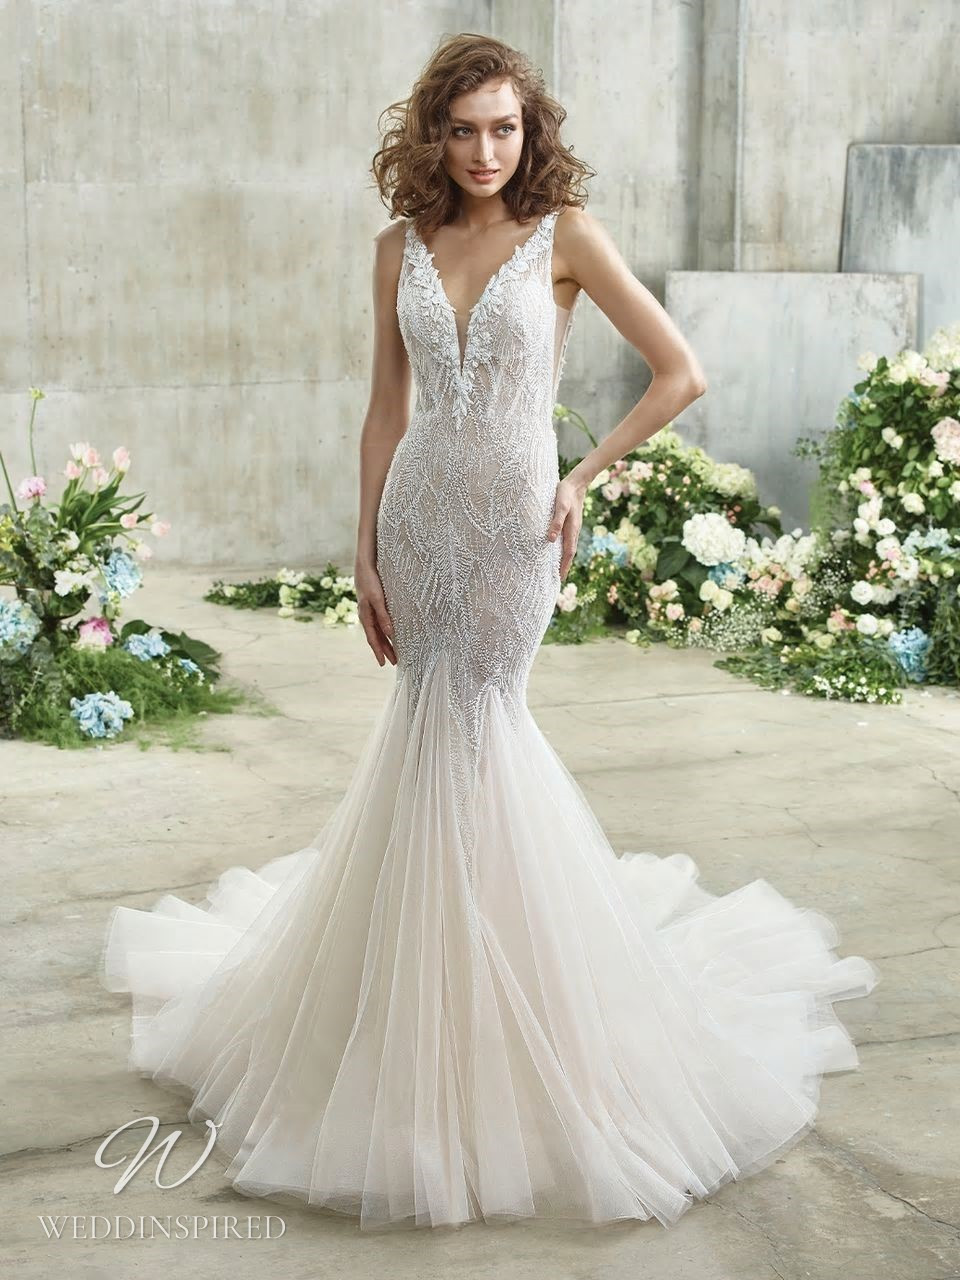 A Badgley Mischka lace mermaid wedding dress with a tulle skirt and a v neckline with beading